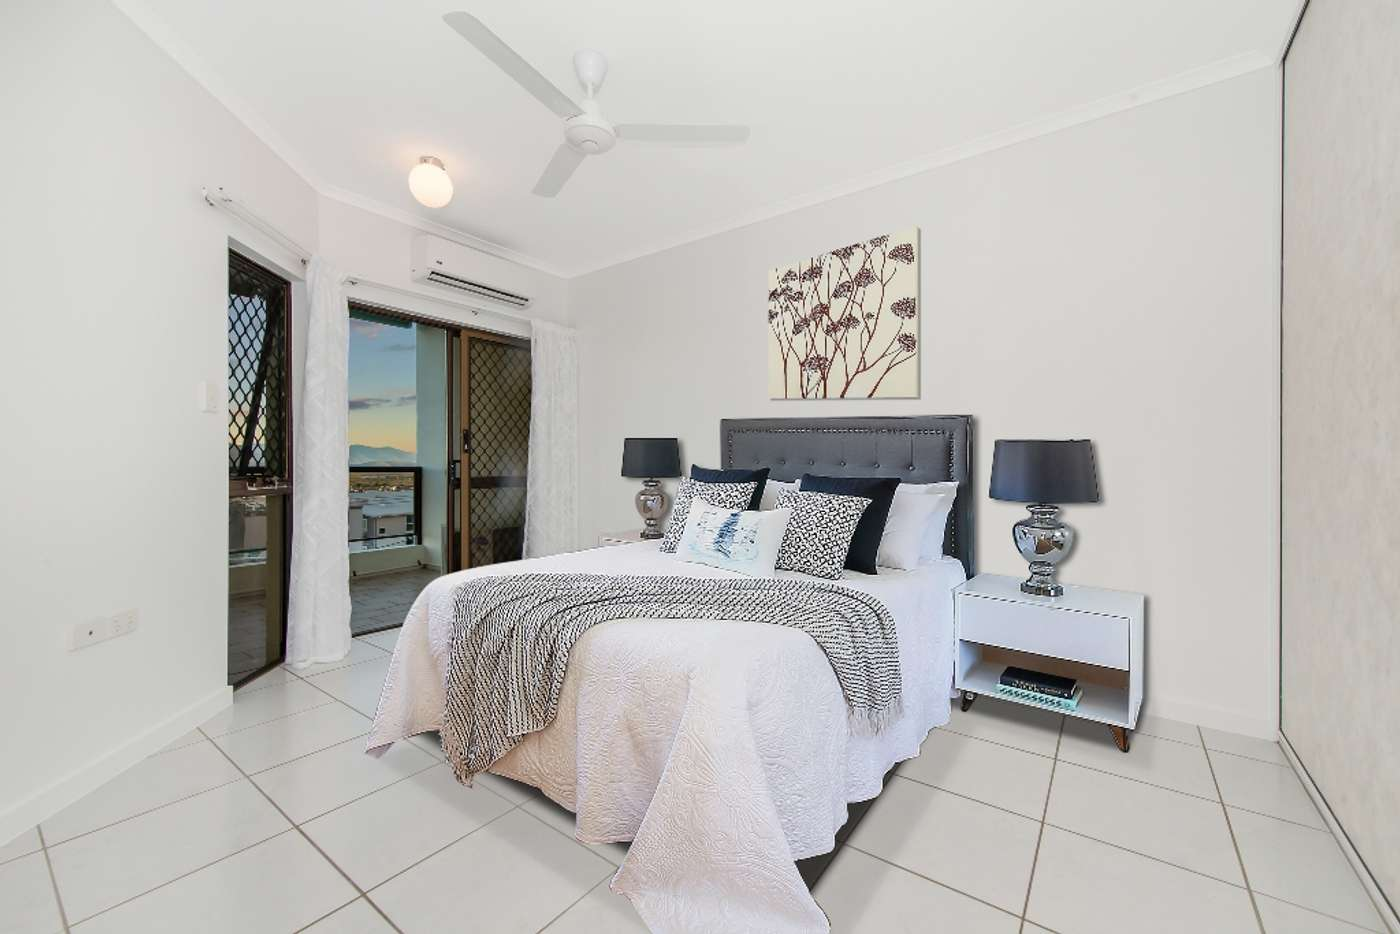 Fifth view of Homely unit listing, 44/7 Hale Street, North Ward QLD 4810